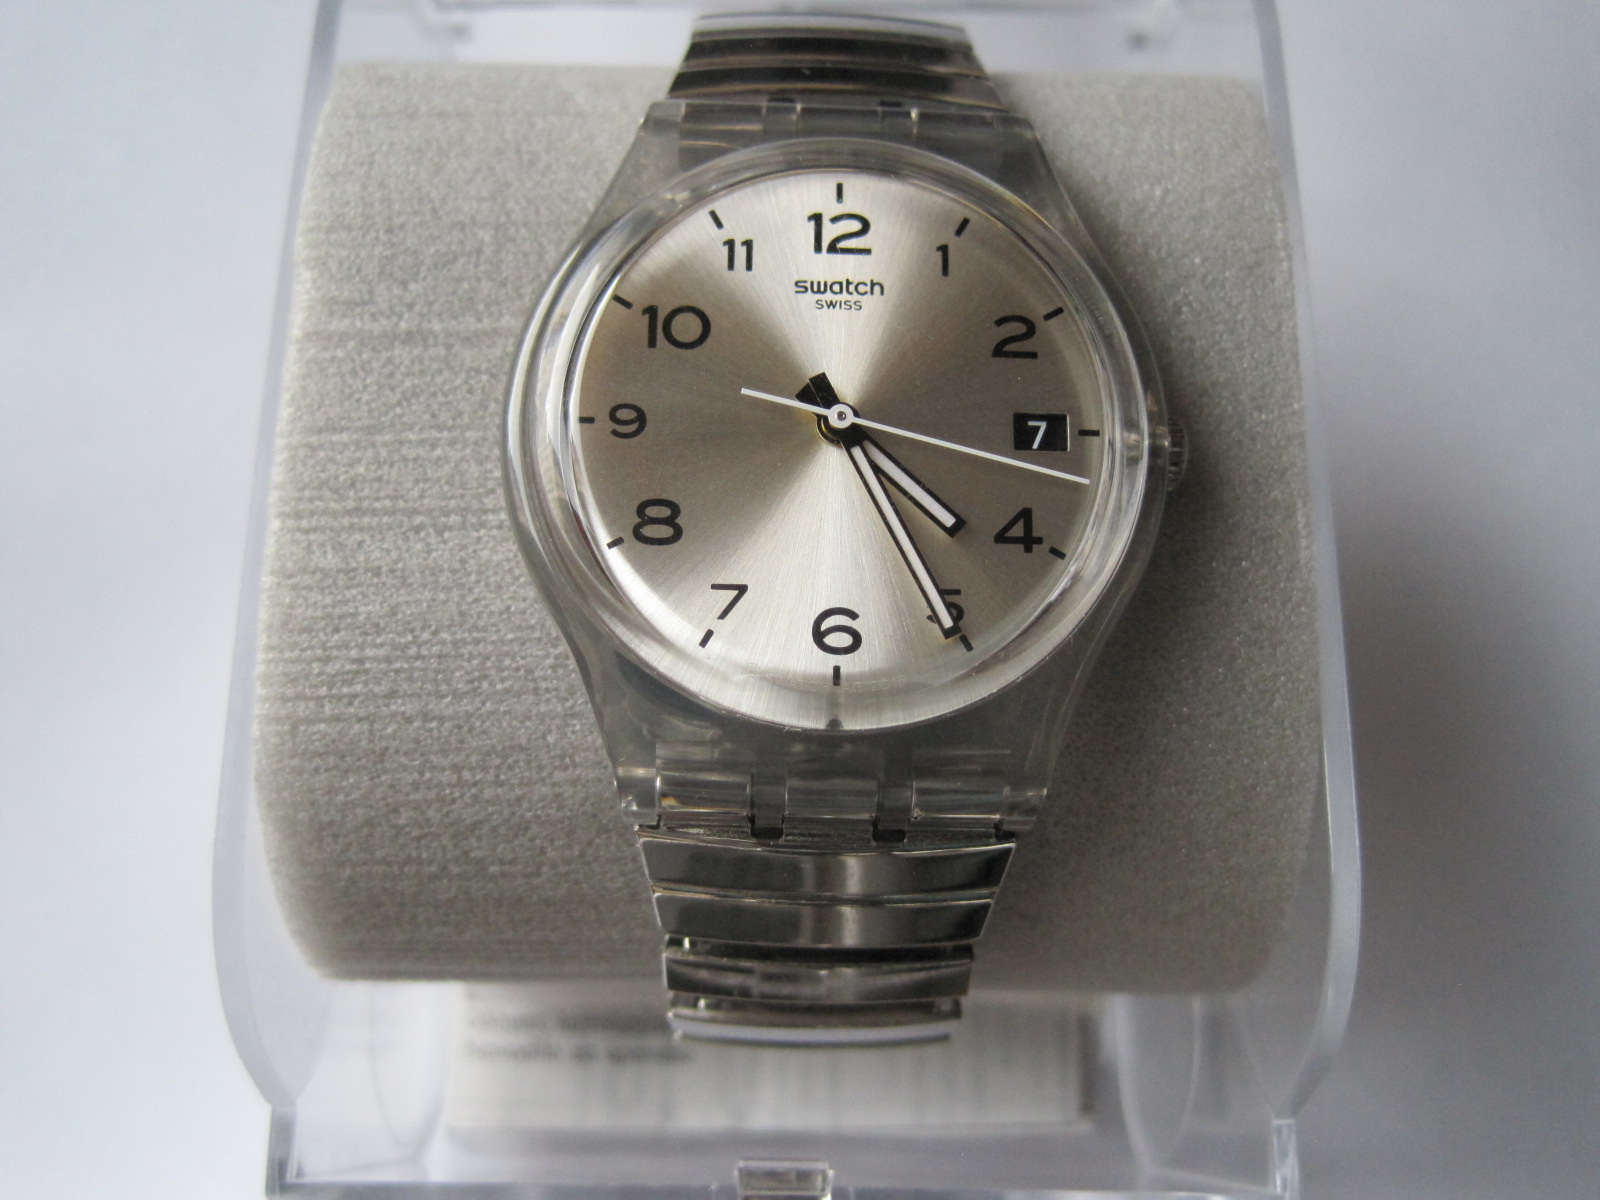 Lot 14 - SWATCH watch never used, in its original box, model 2015 - - Montre SWATCH jamais [...]